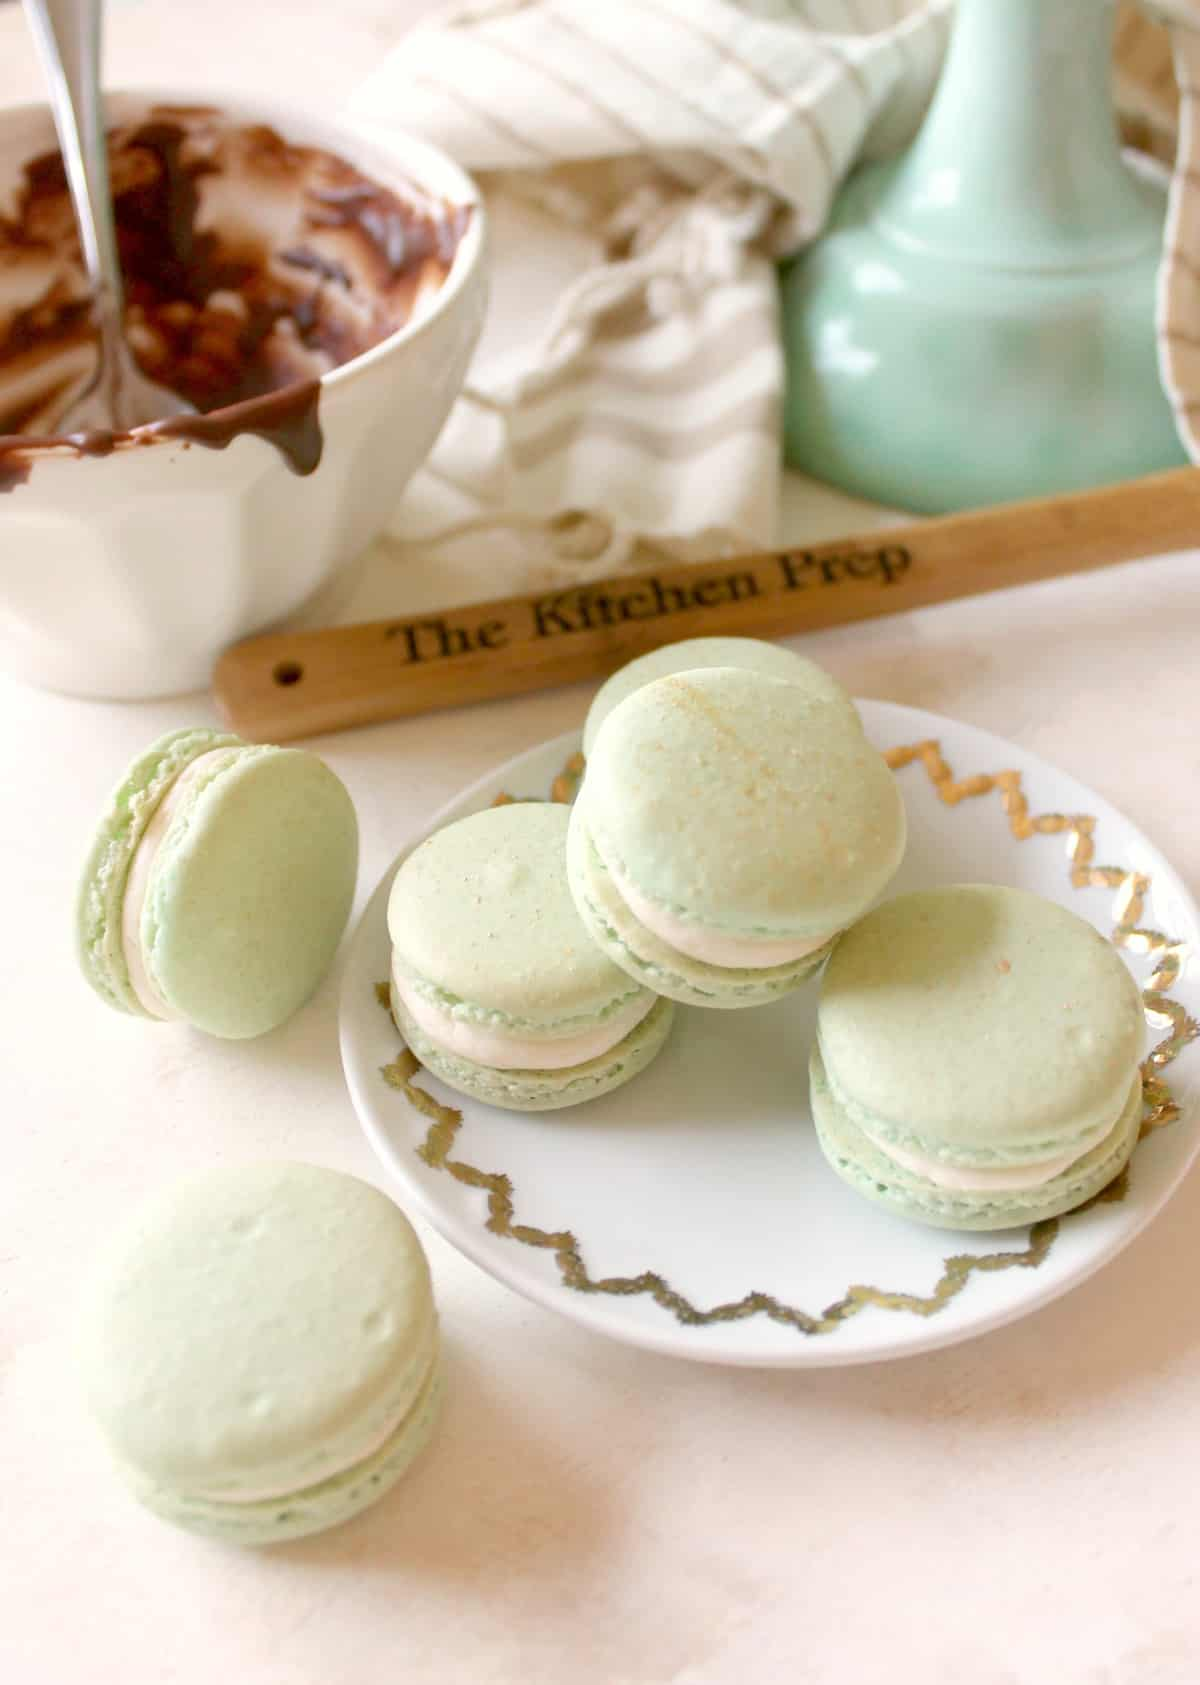 These delicious Irish Cream French Macarons are a fool-proof recipe for a sweet dessert